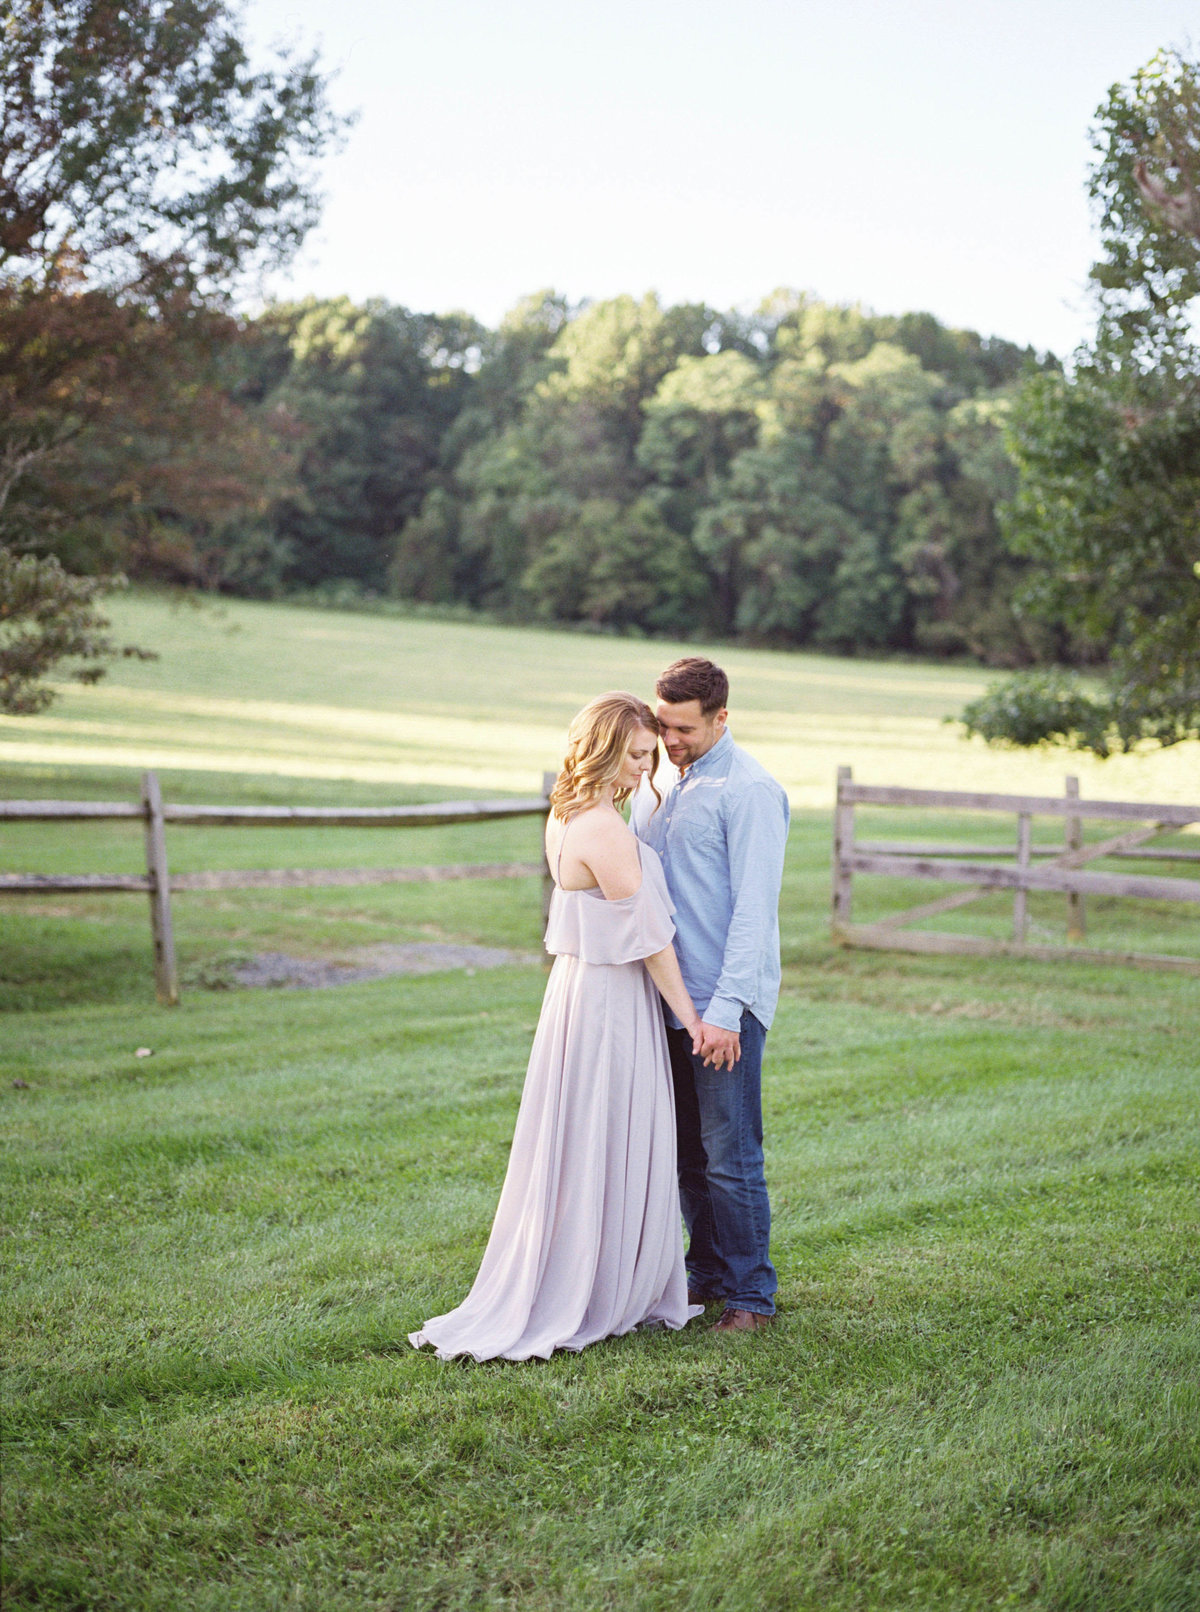 stepping stone museum, maryland engagement photographer, fine art maryland wedding photographer-9